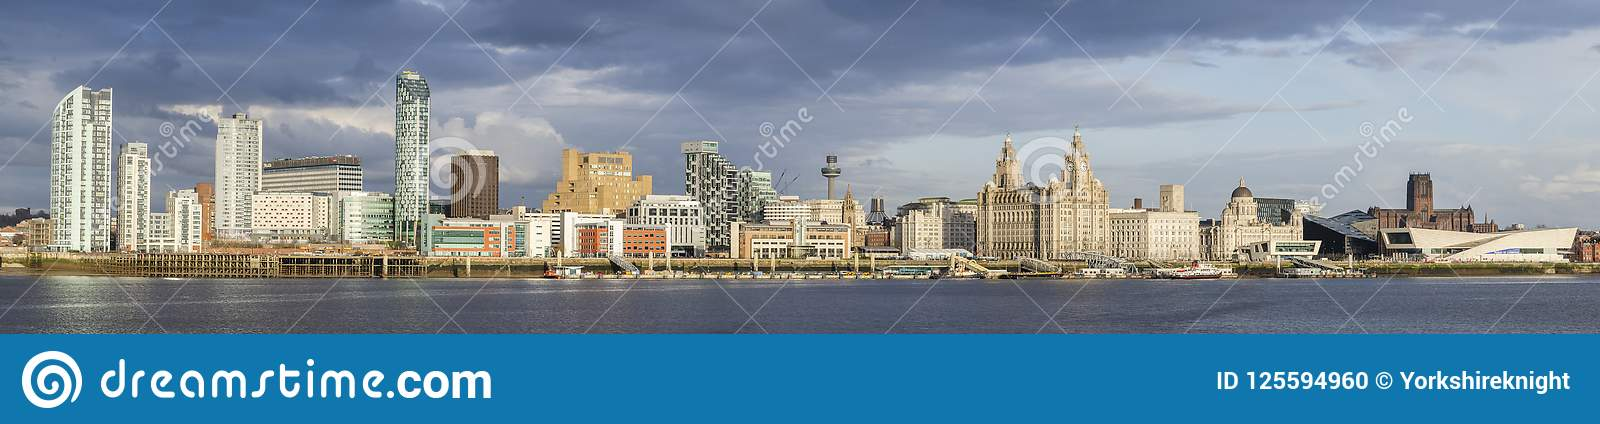 Liverpool waterfront panorama UNESCO buildings world famous landmarks.